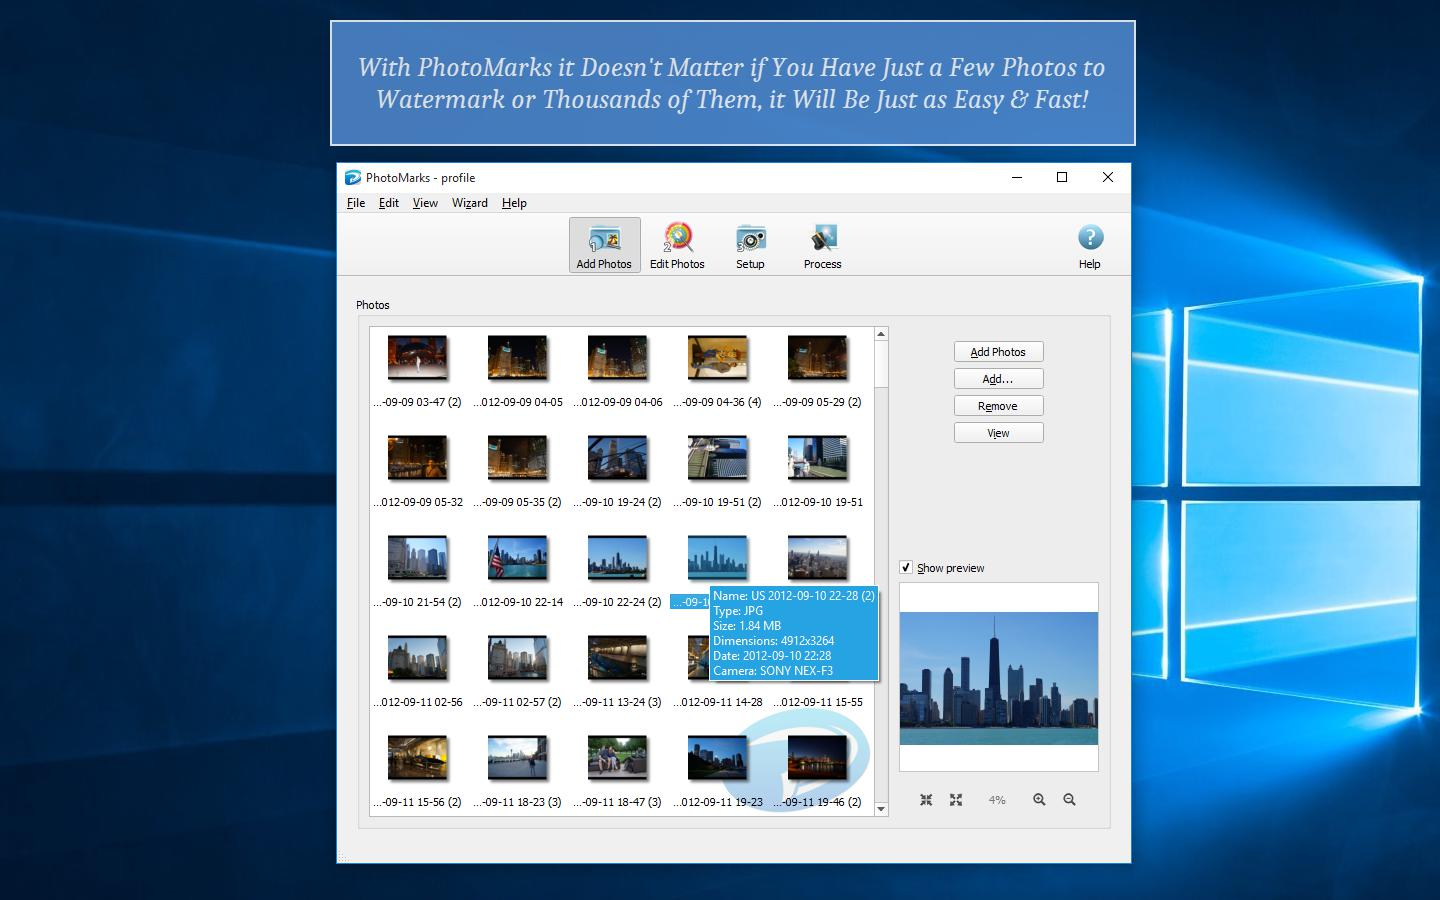 Free Photo Collage Software - E.M. Free Photo Collage Free photo watermark software for mac